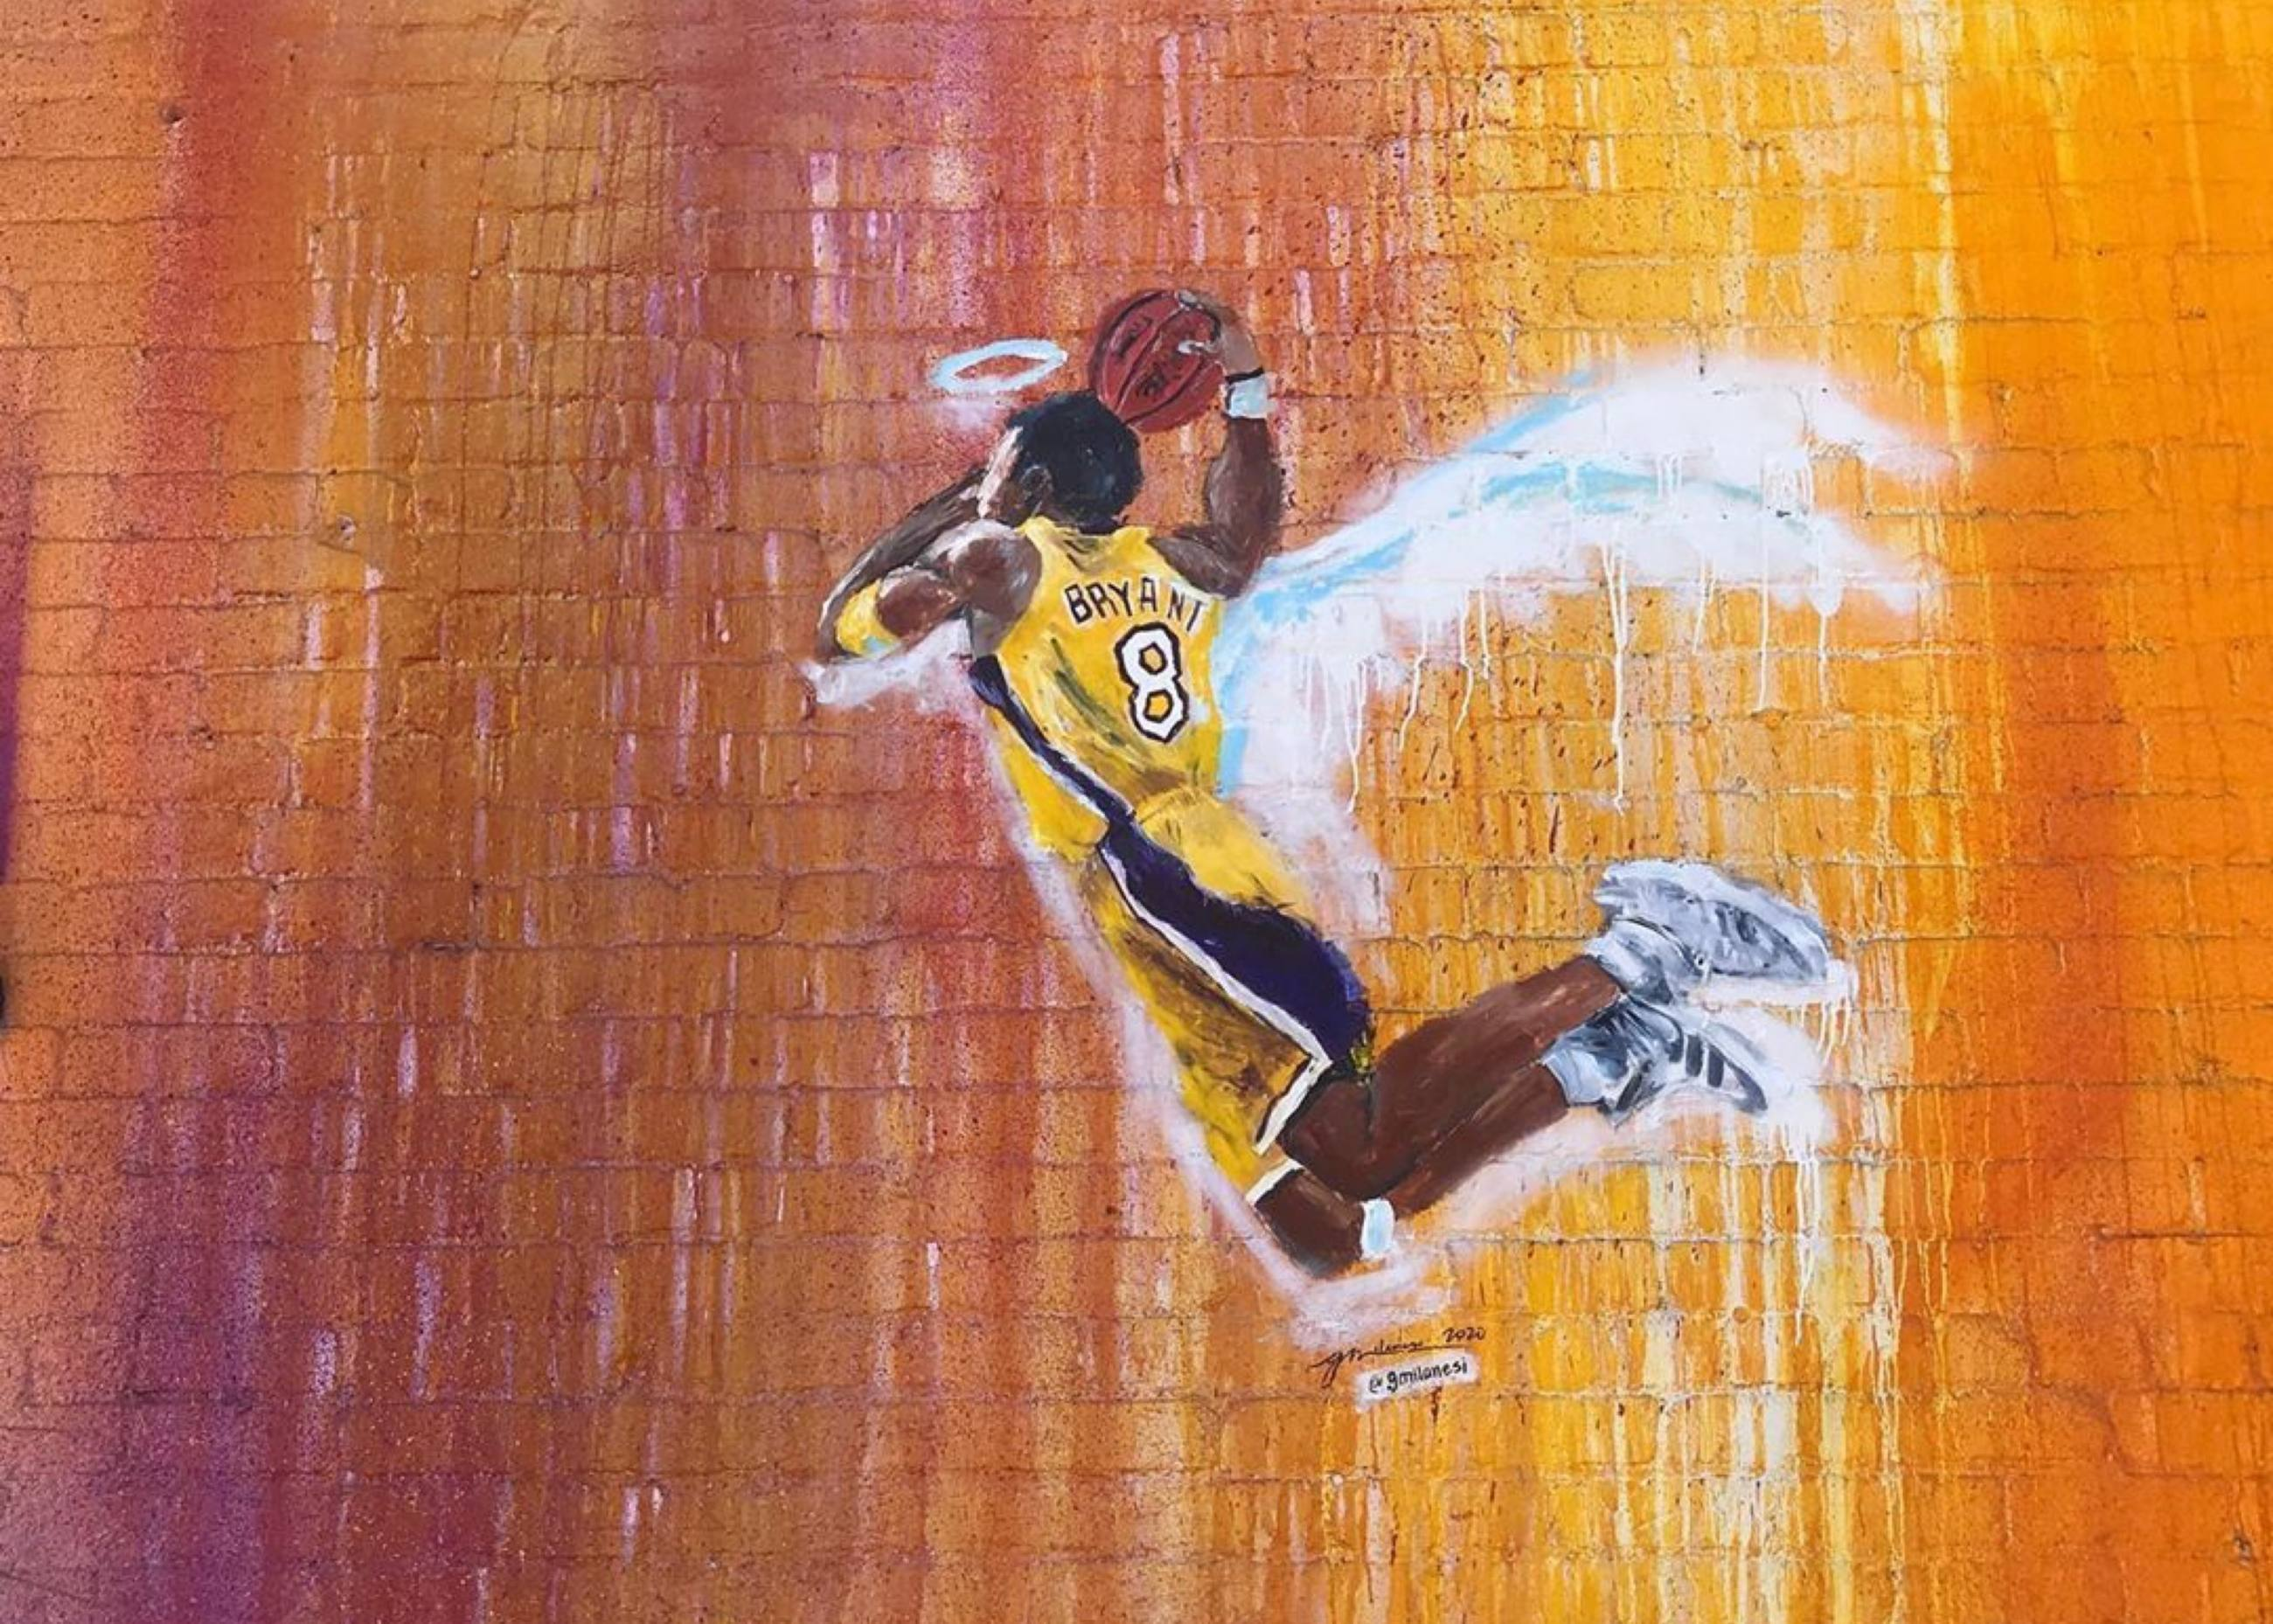 Kobe Bryant mural by Gena Milanesi at In Sheep's Clothing